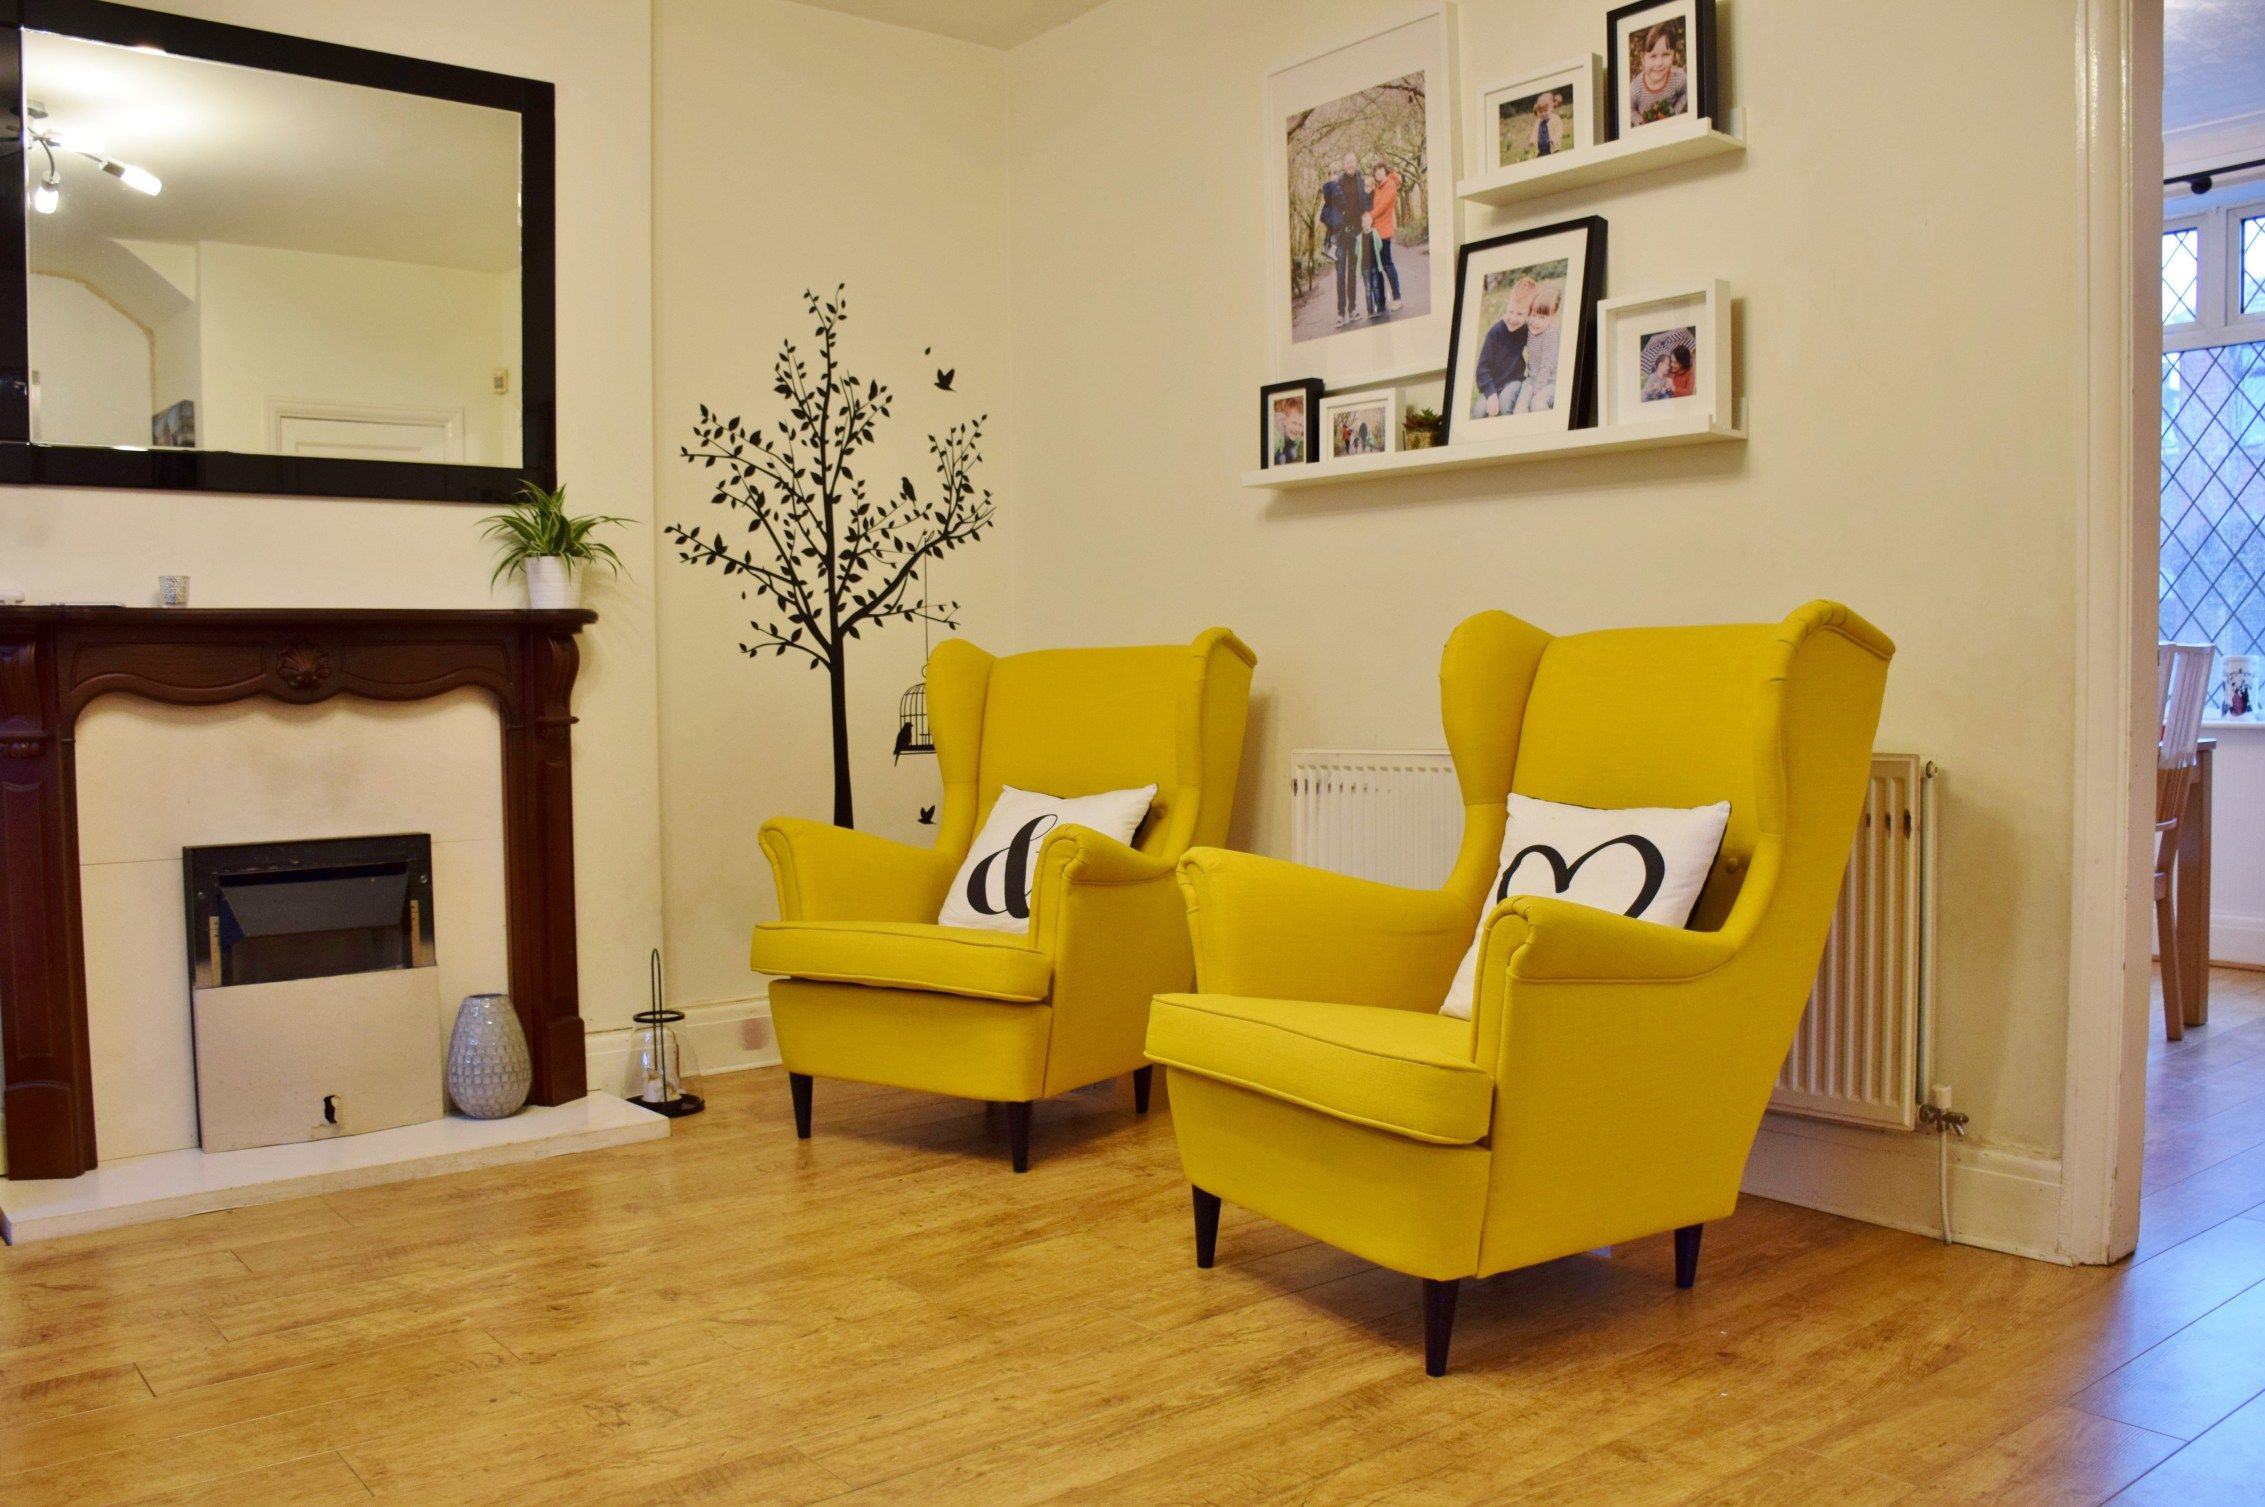 Best ideas about Ikea Living Room Chairs . Save or Pin Goodbye Old Sofa Ordinary Moments sweet Now.